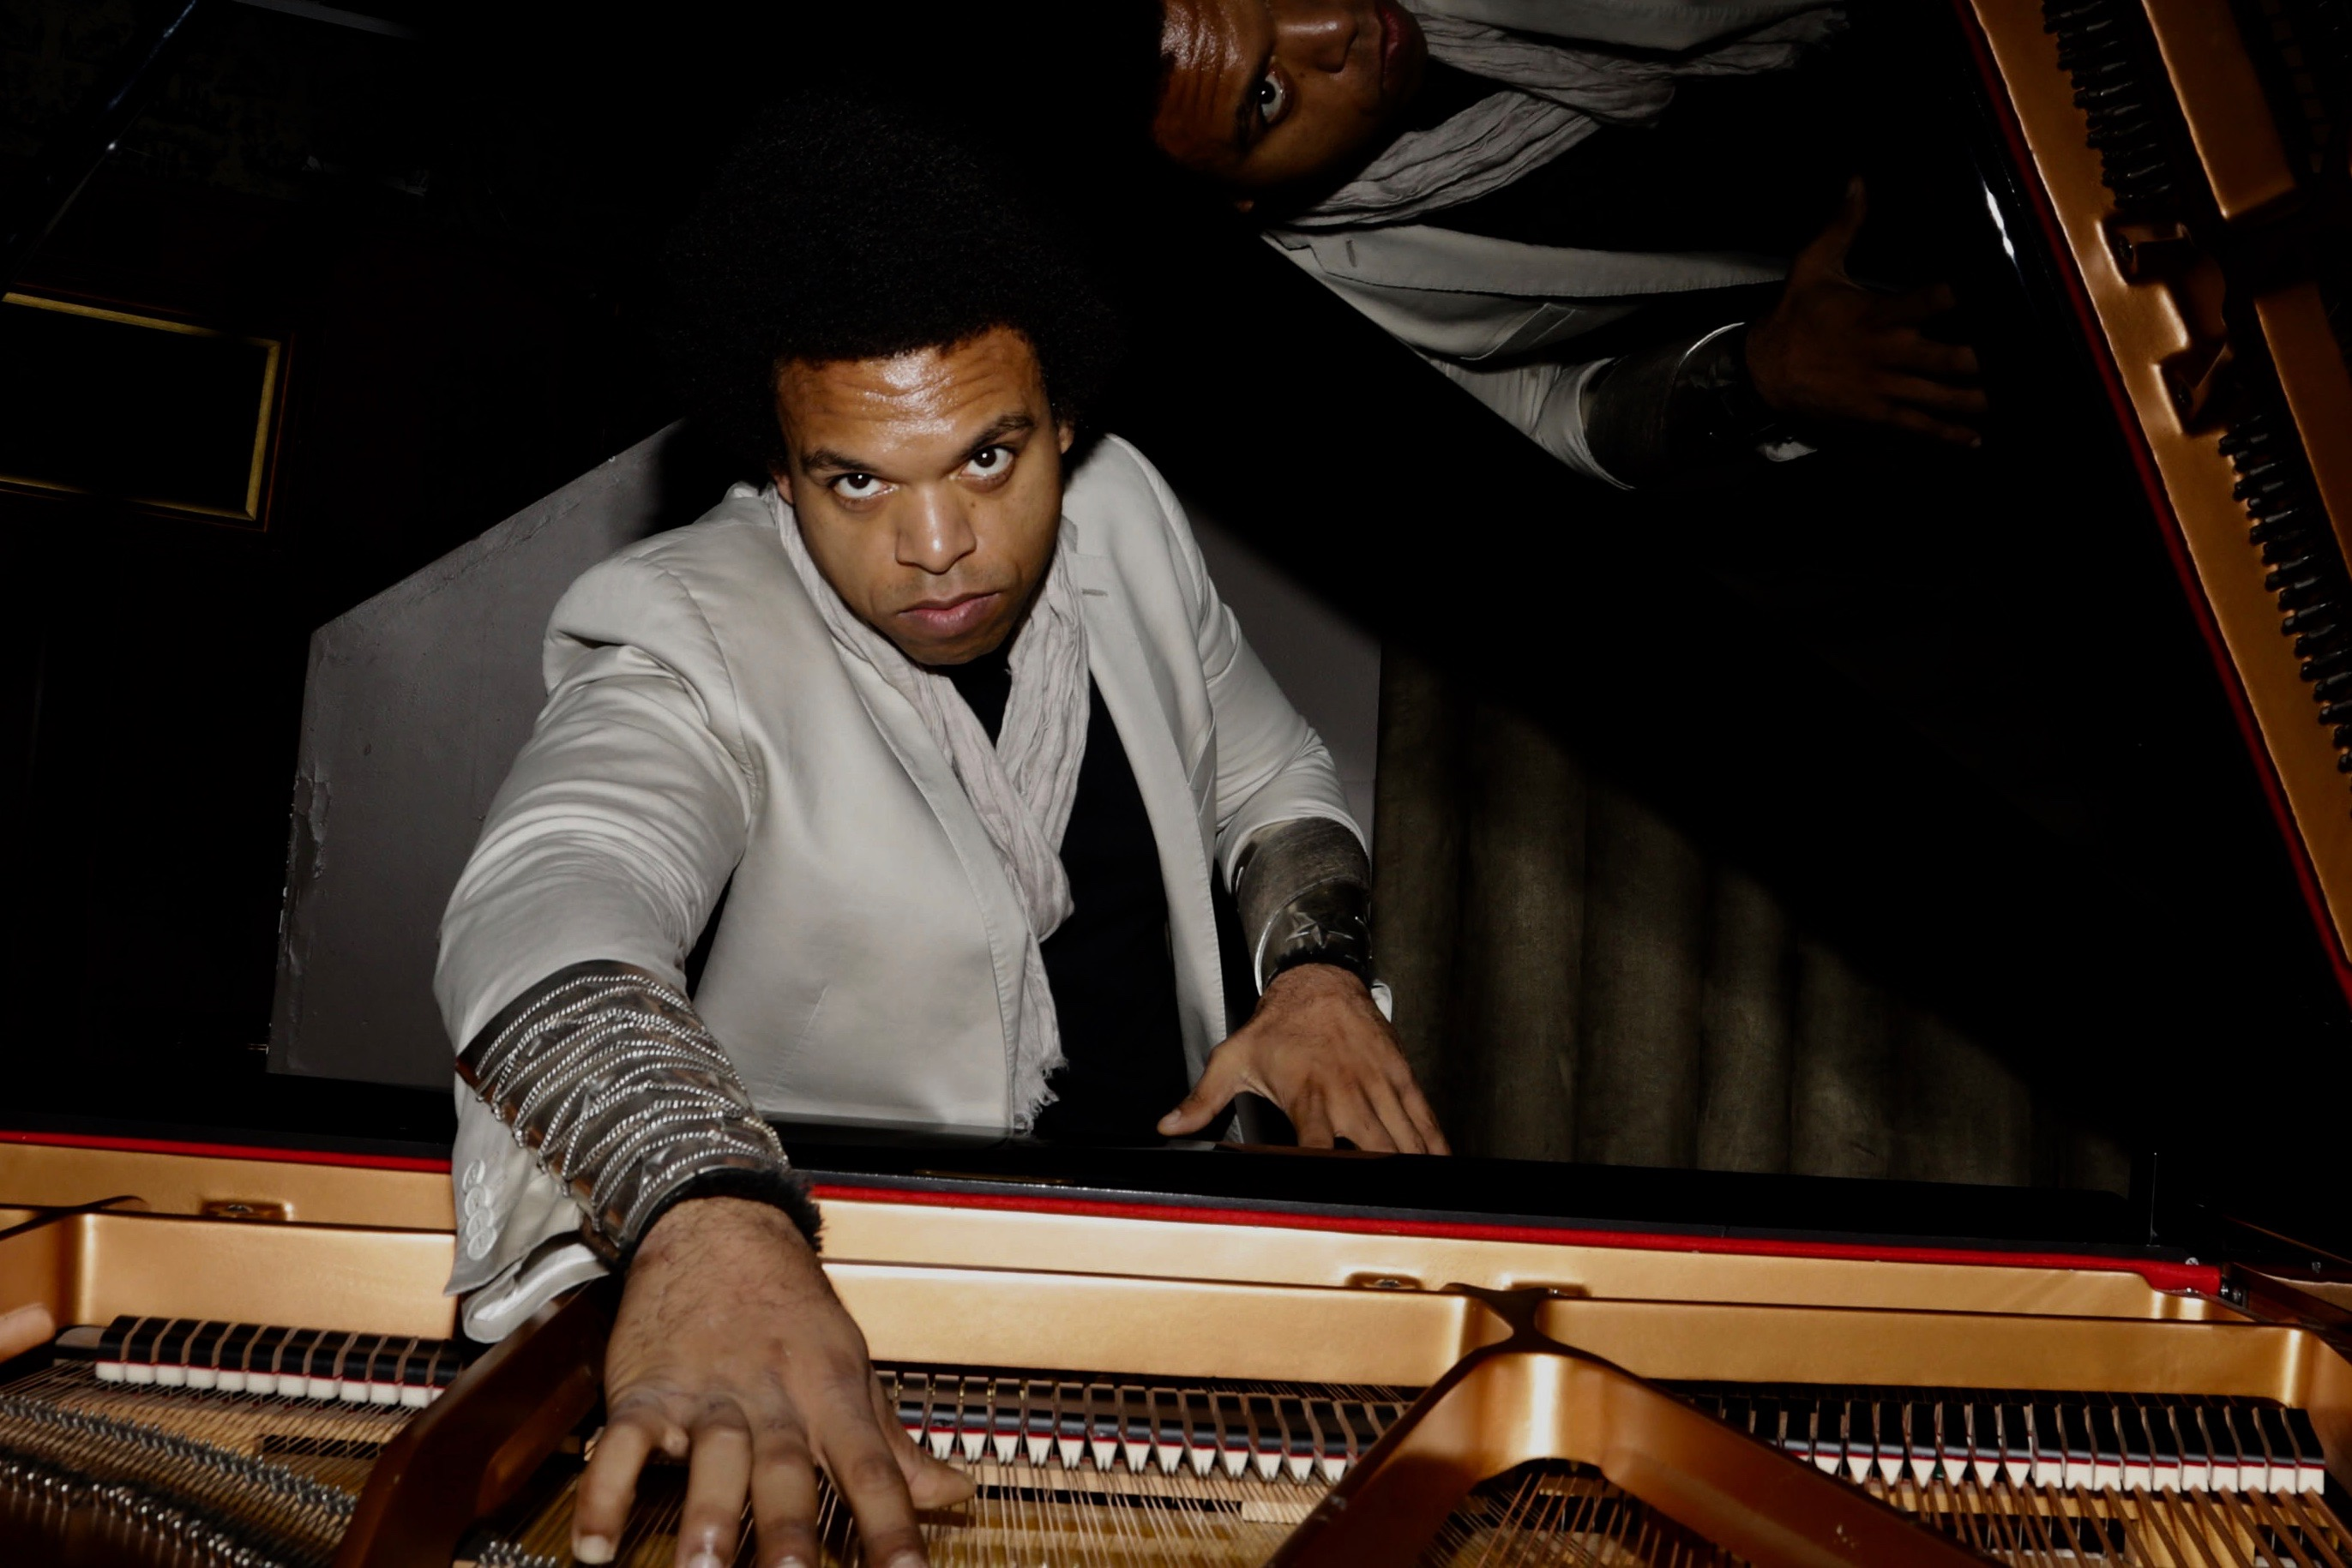 Outrageous, explosive, pounding piano – GLOBAL RHYTHMS